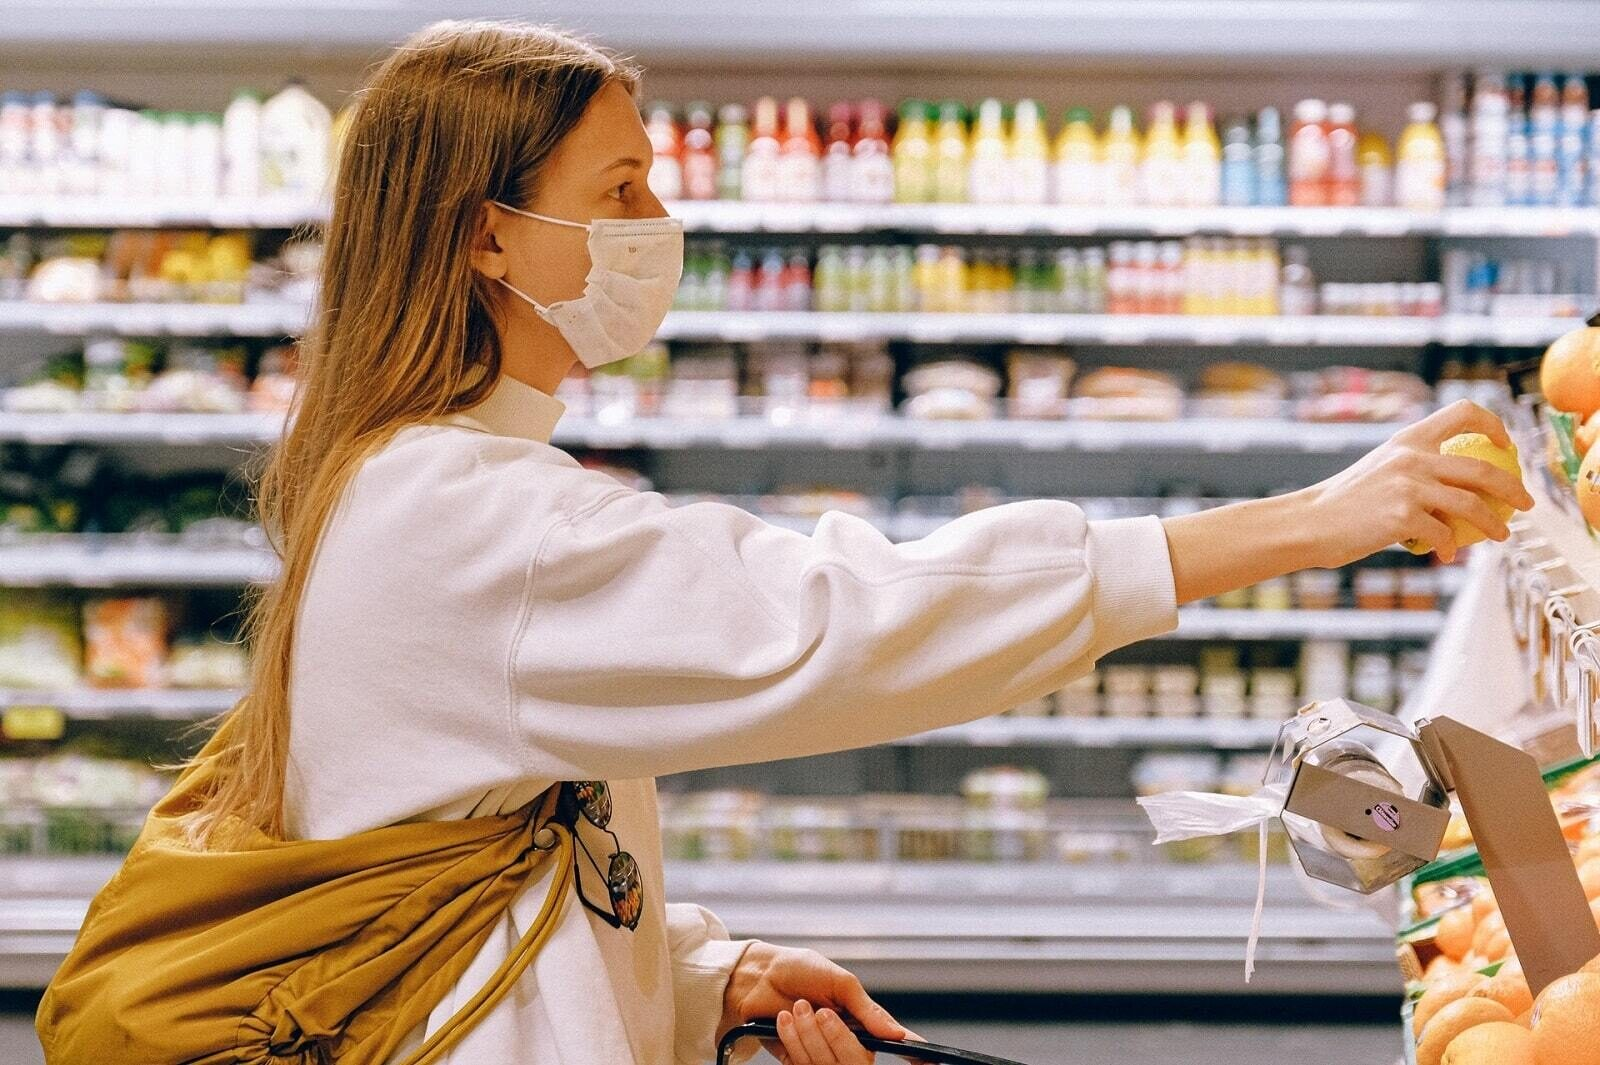 woman-wearing-mask-in-supermarket-1600-min.jpg